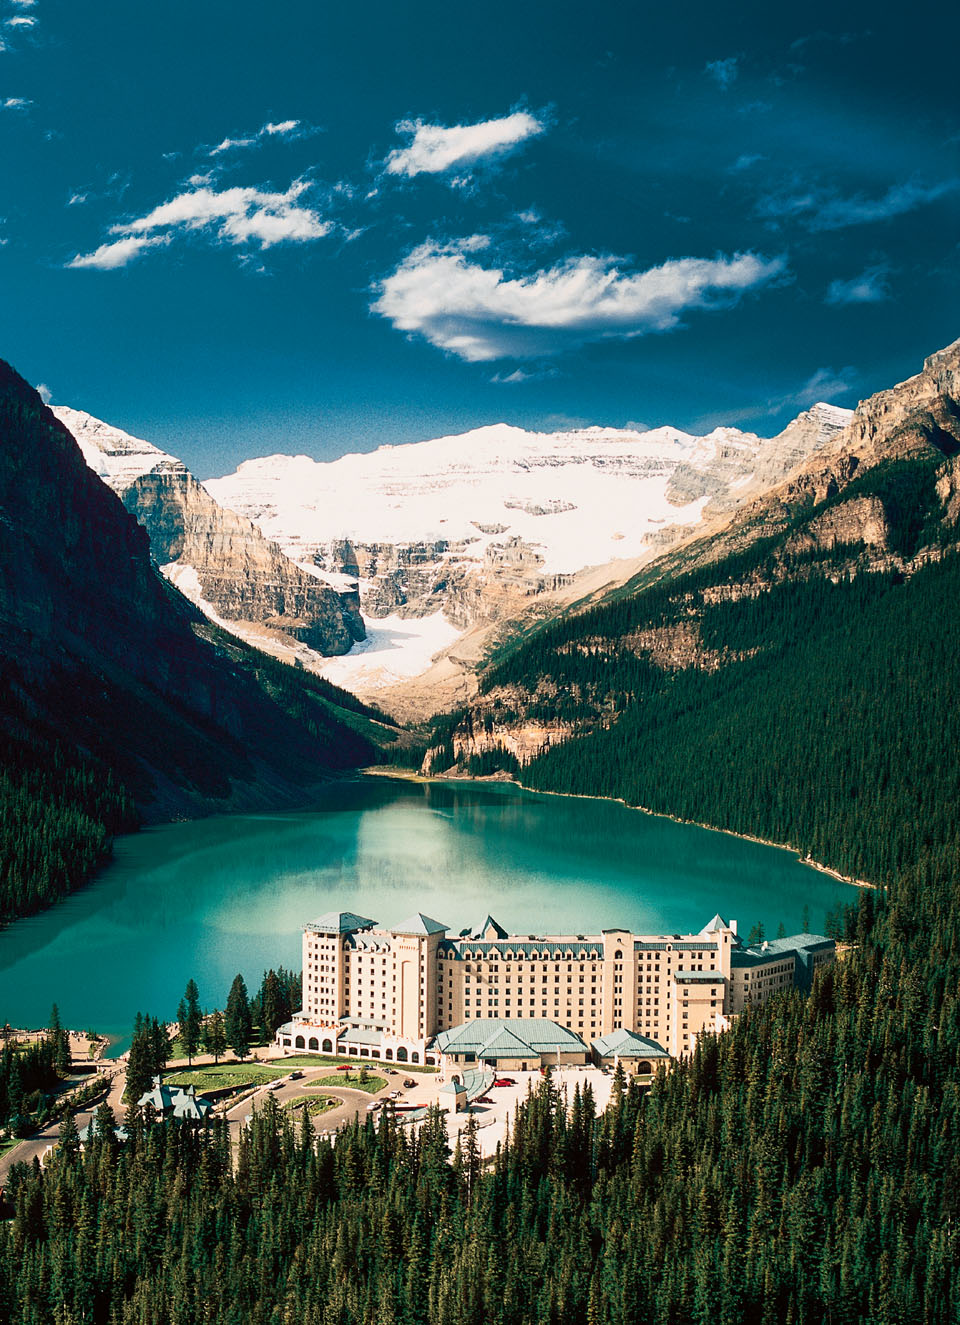 Chateau Lake Louise